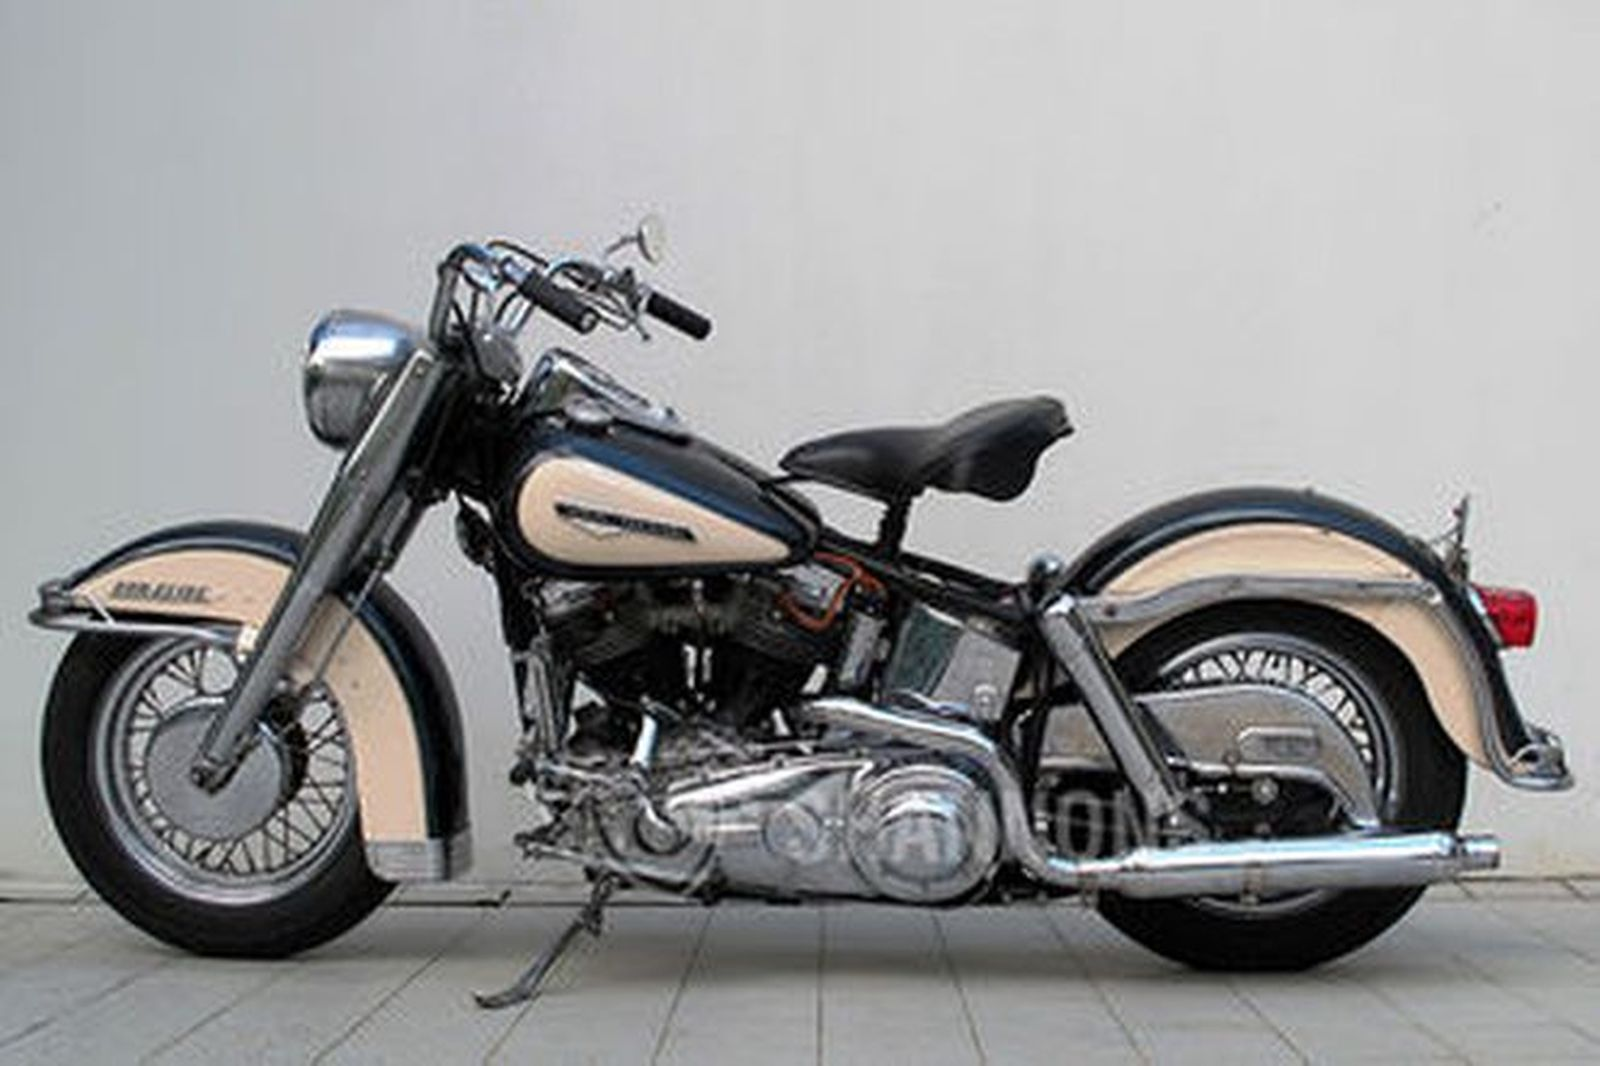 Harley Davidson: Harley-Davidson FL Duo Glide Motorcycle Auctions